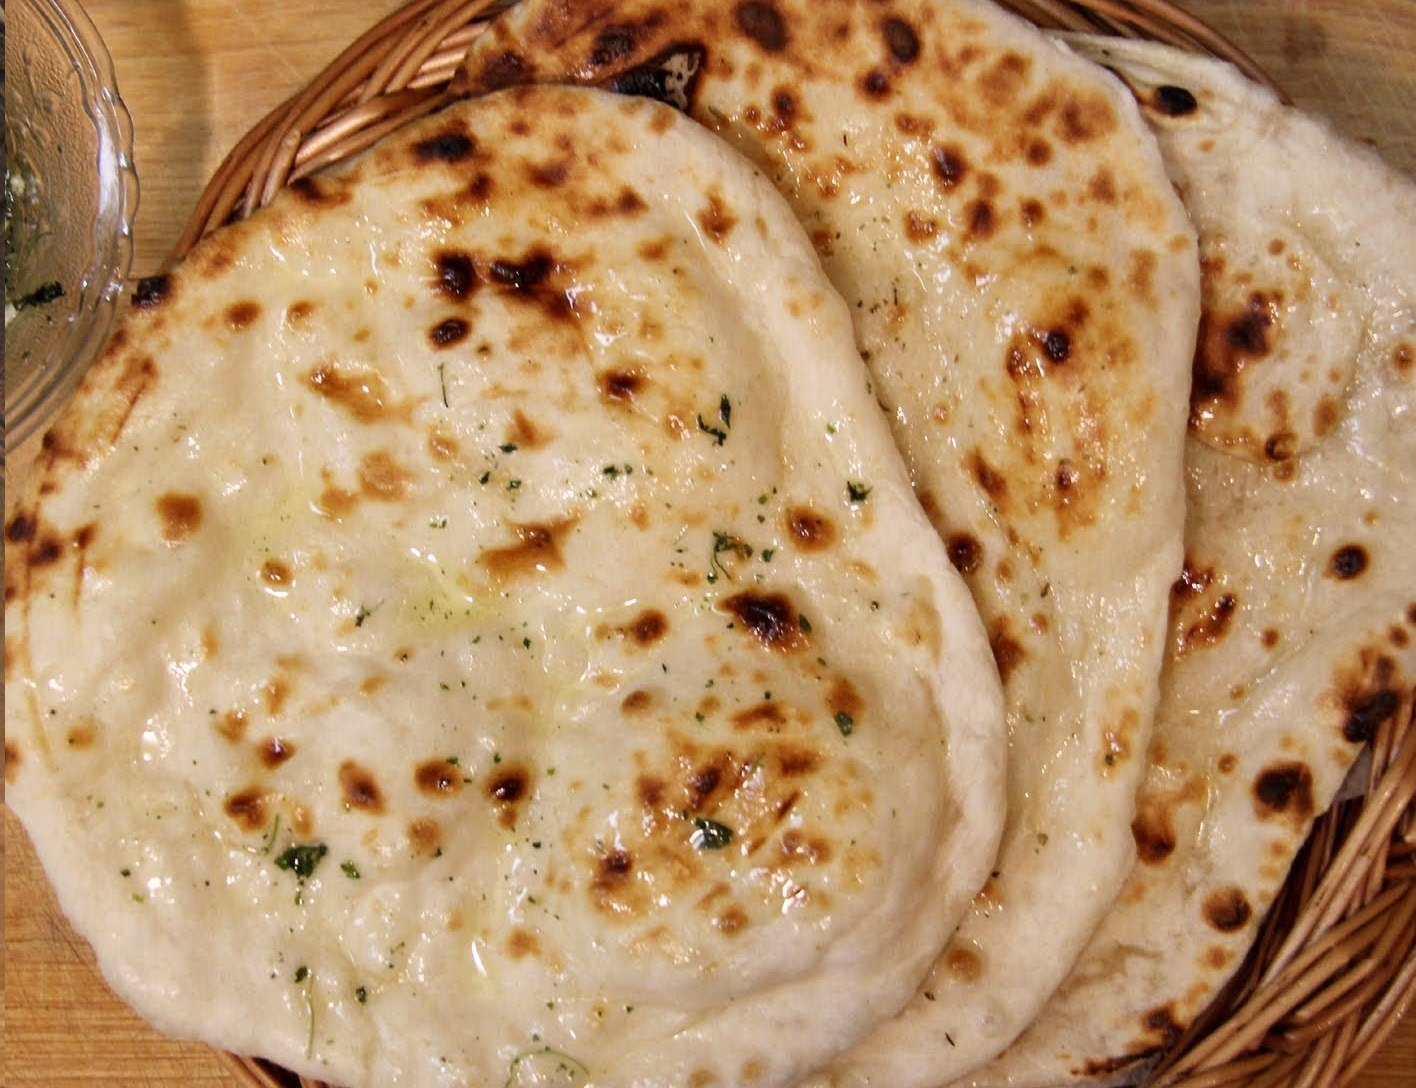 Cheese + Garlic + Naan